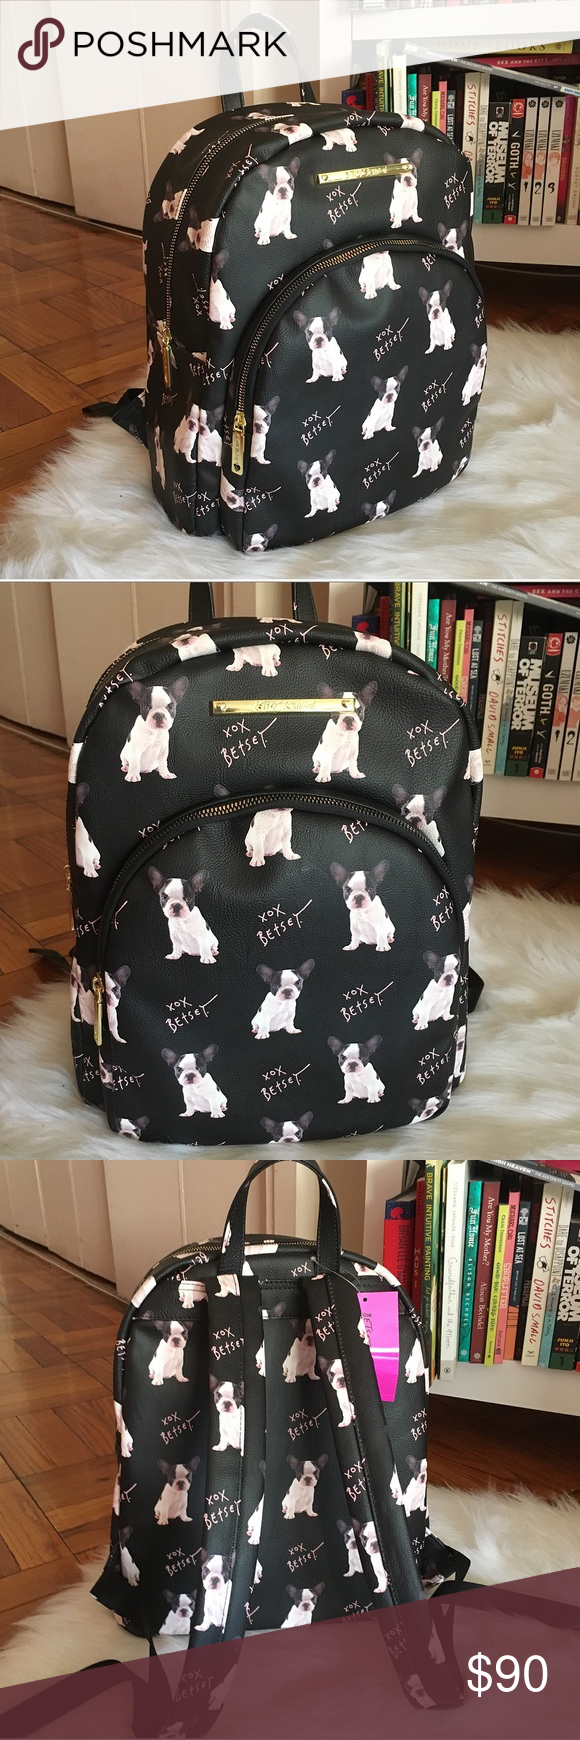 Betsey Johnson Black Doggy French Bulldog Backpack NWT